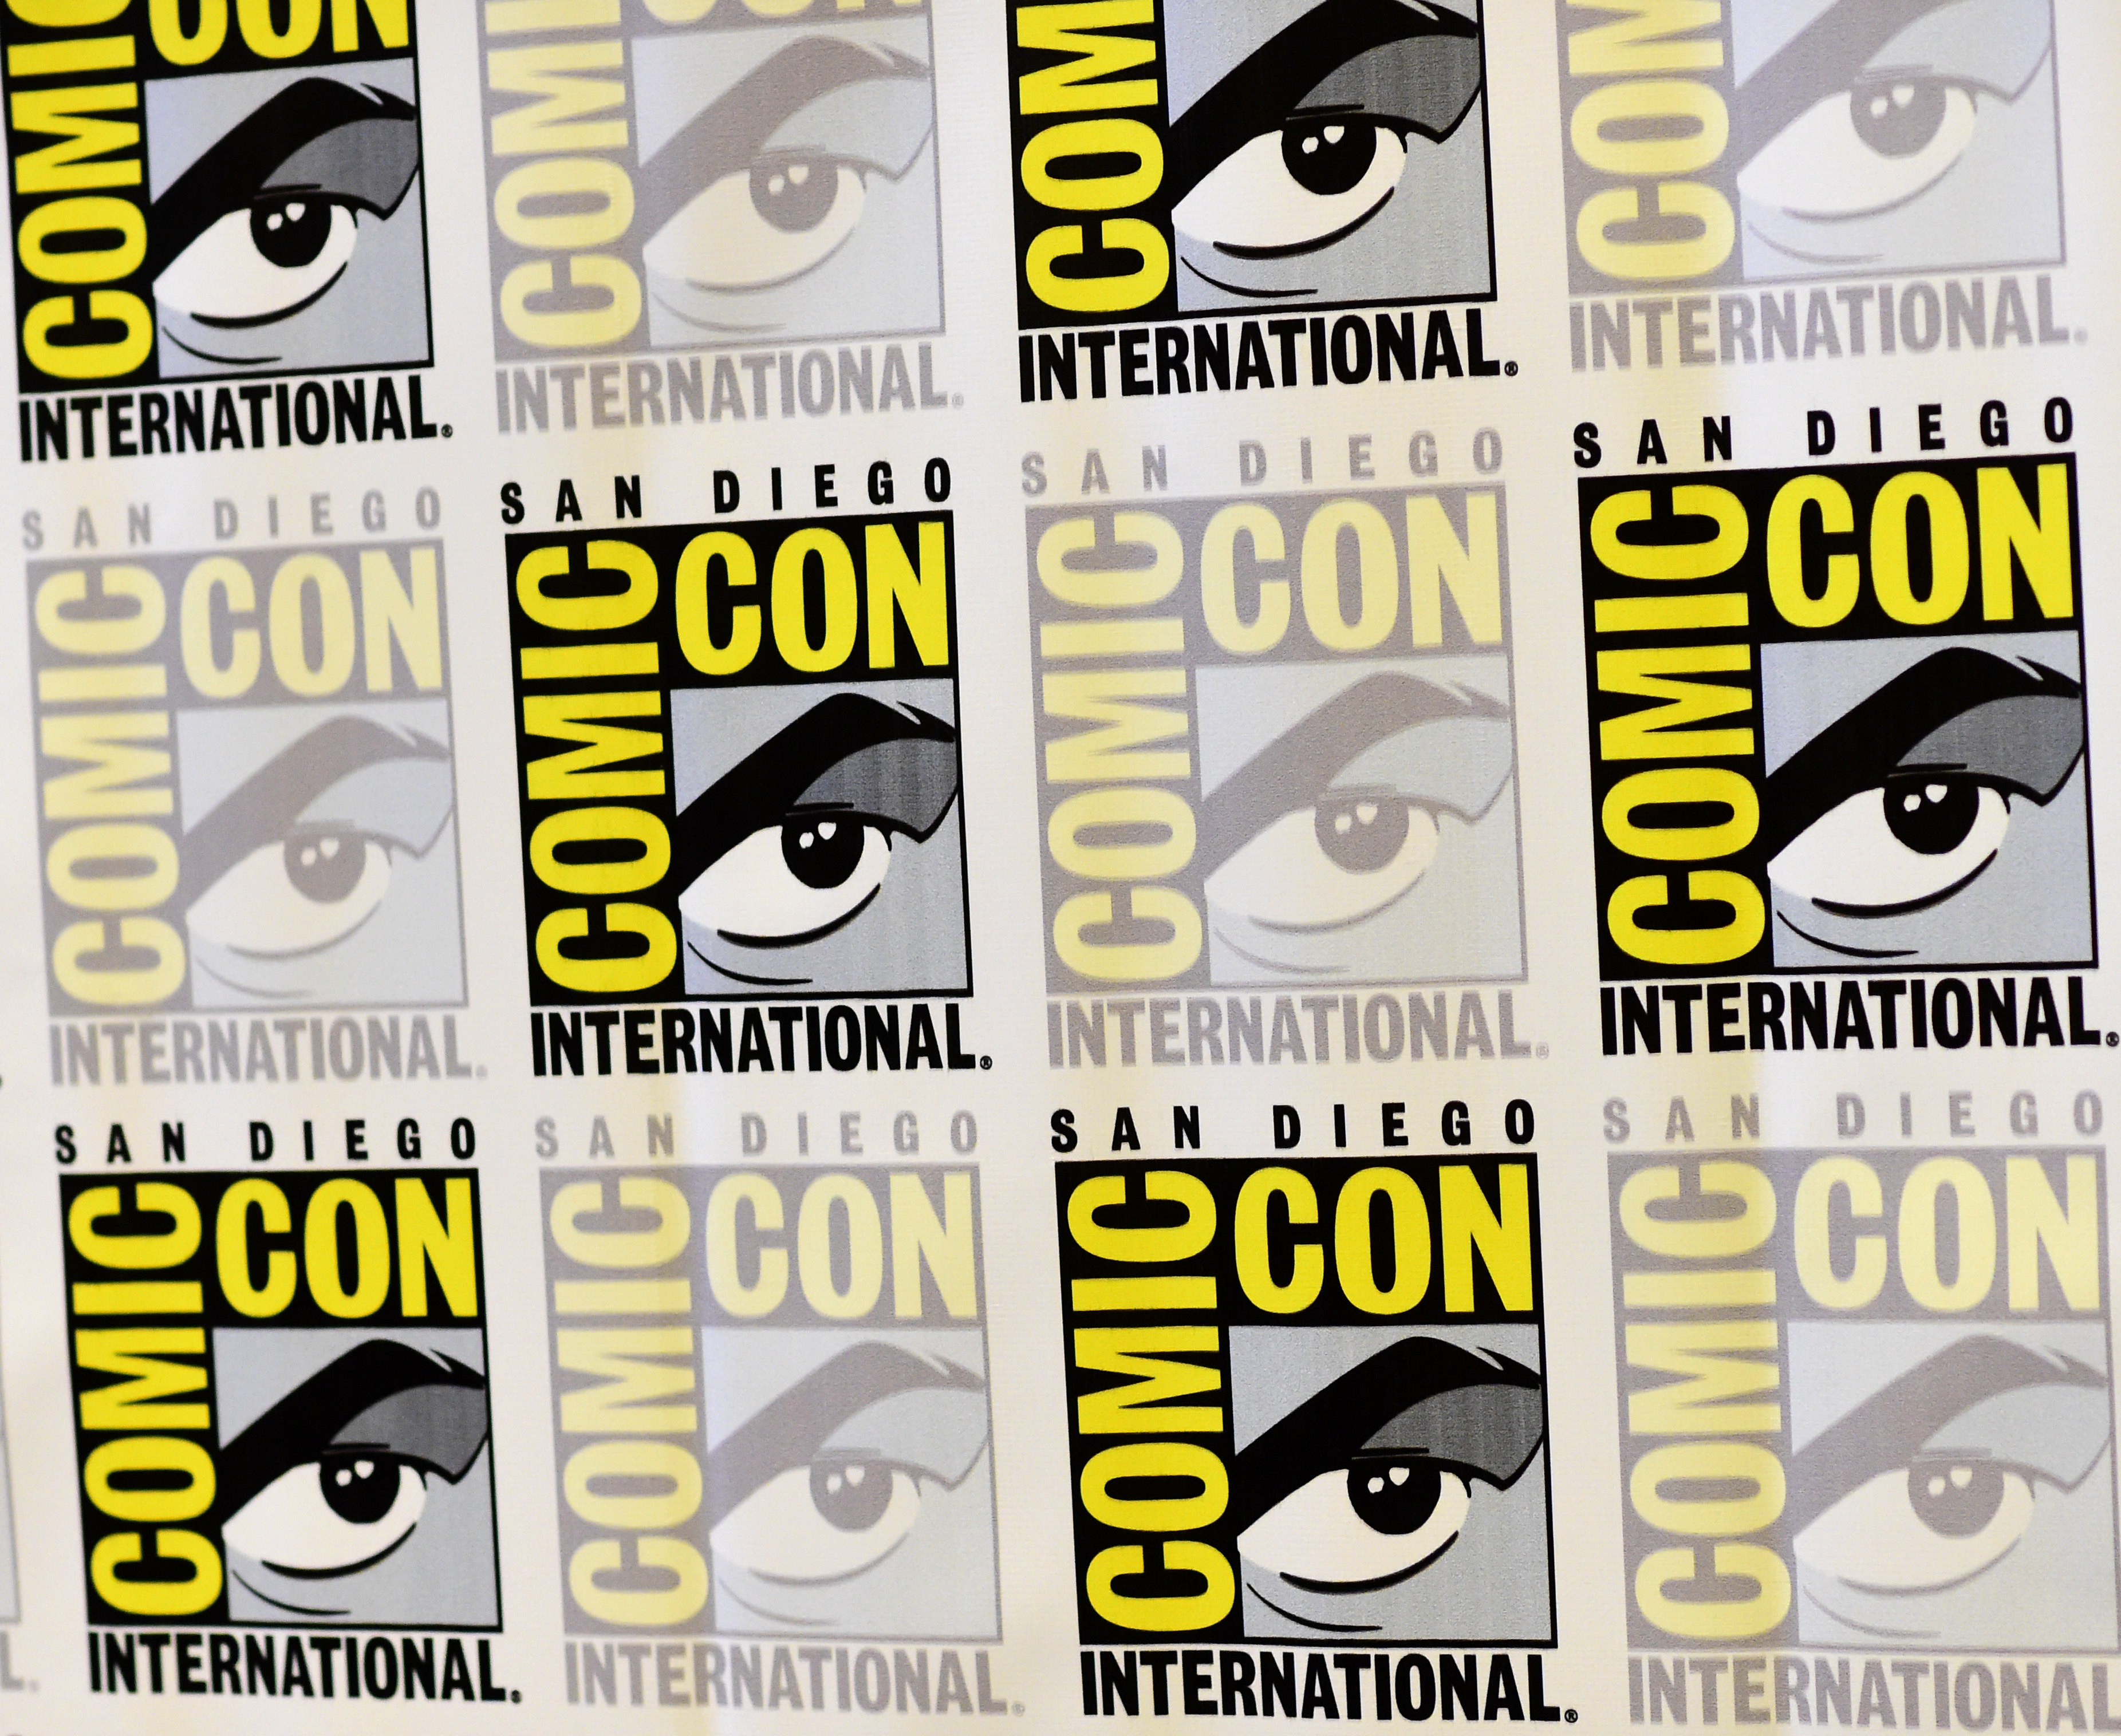 Every 2018 San Diego Comic-Con panel you want to watch out